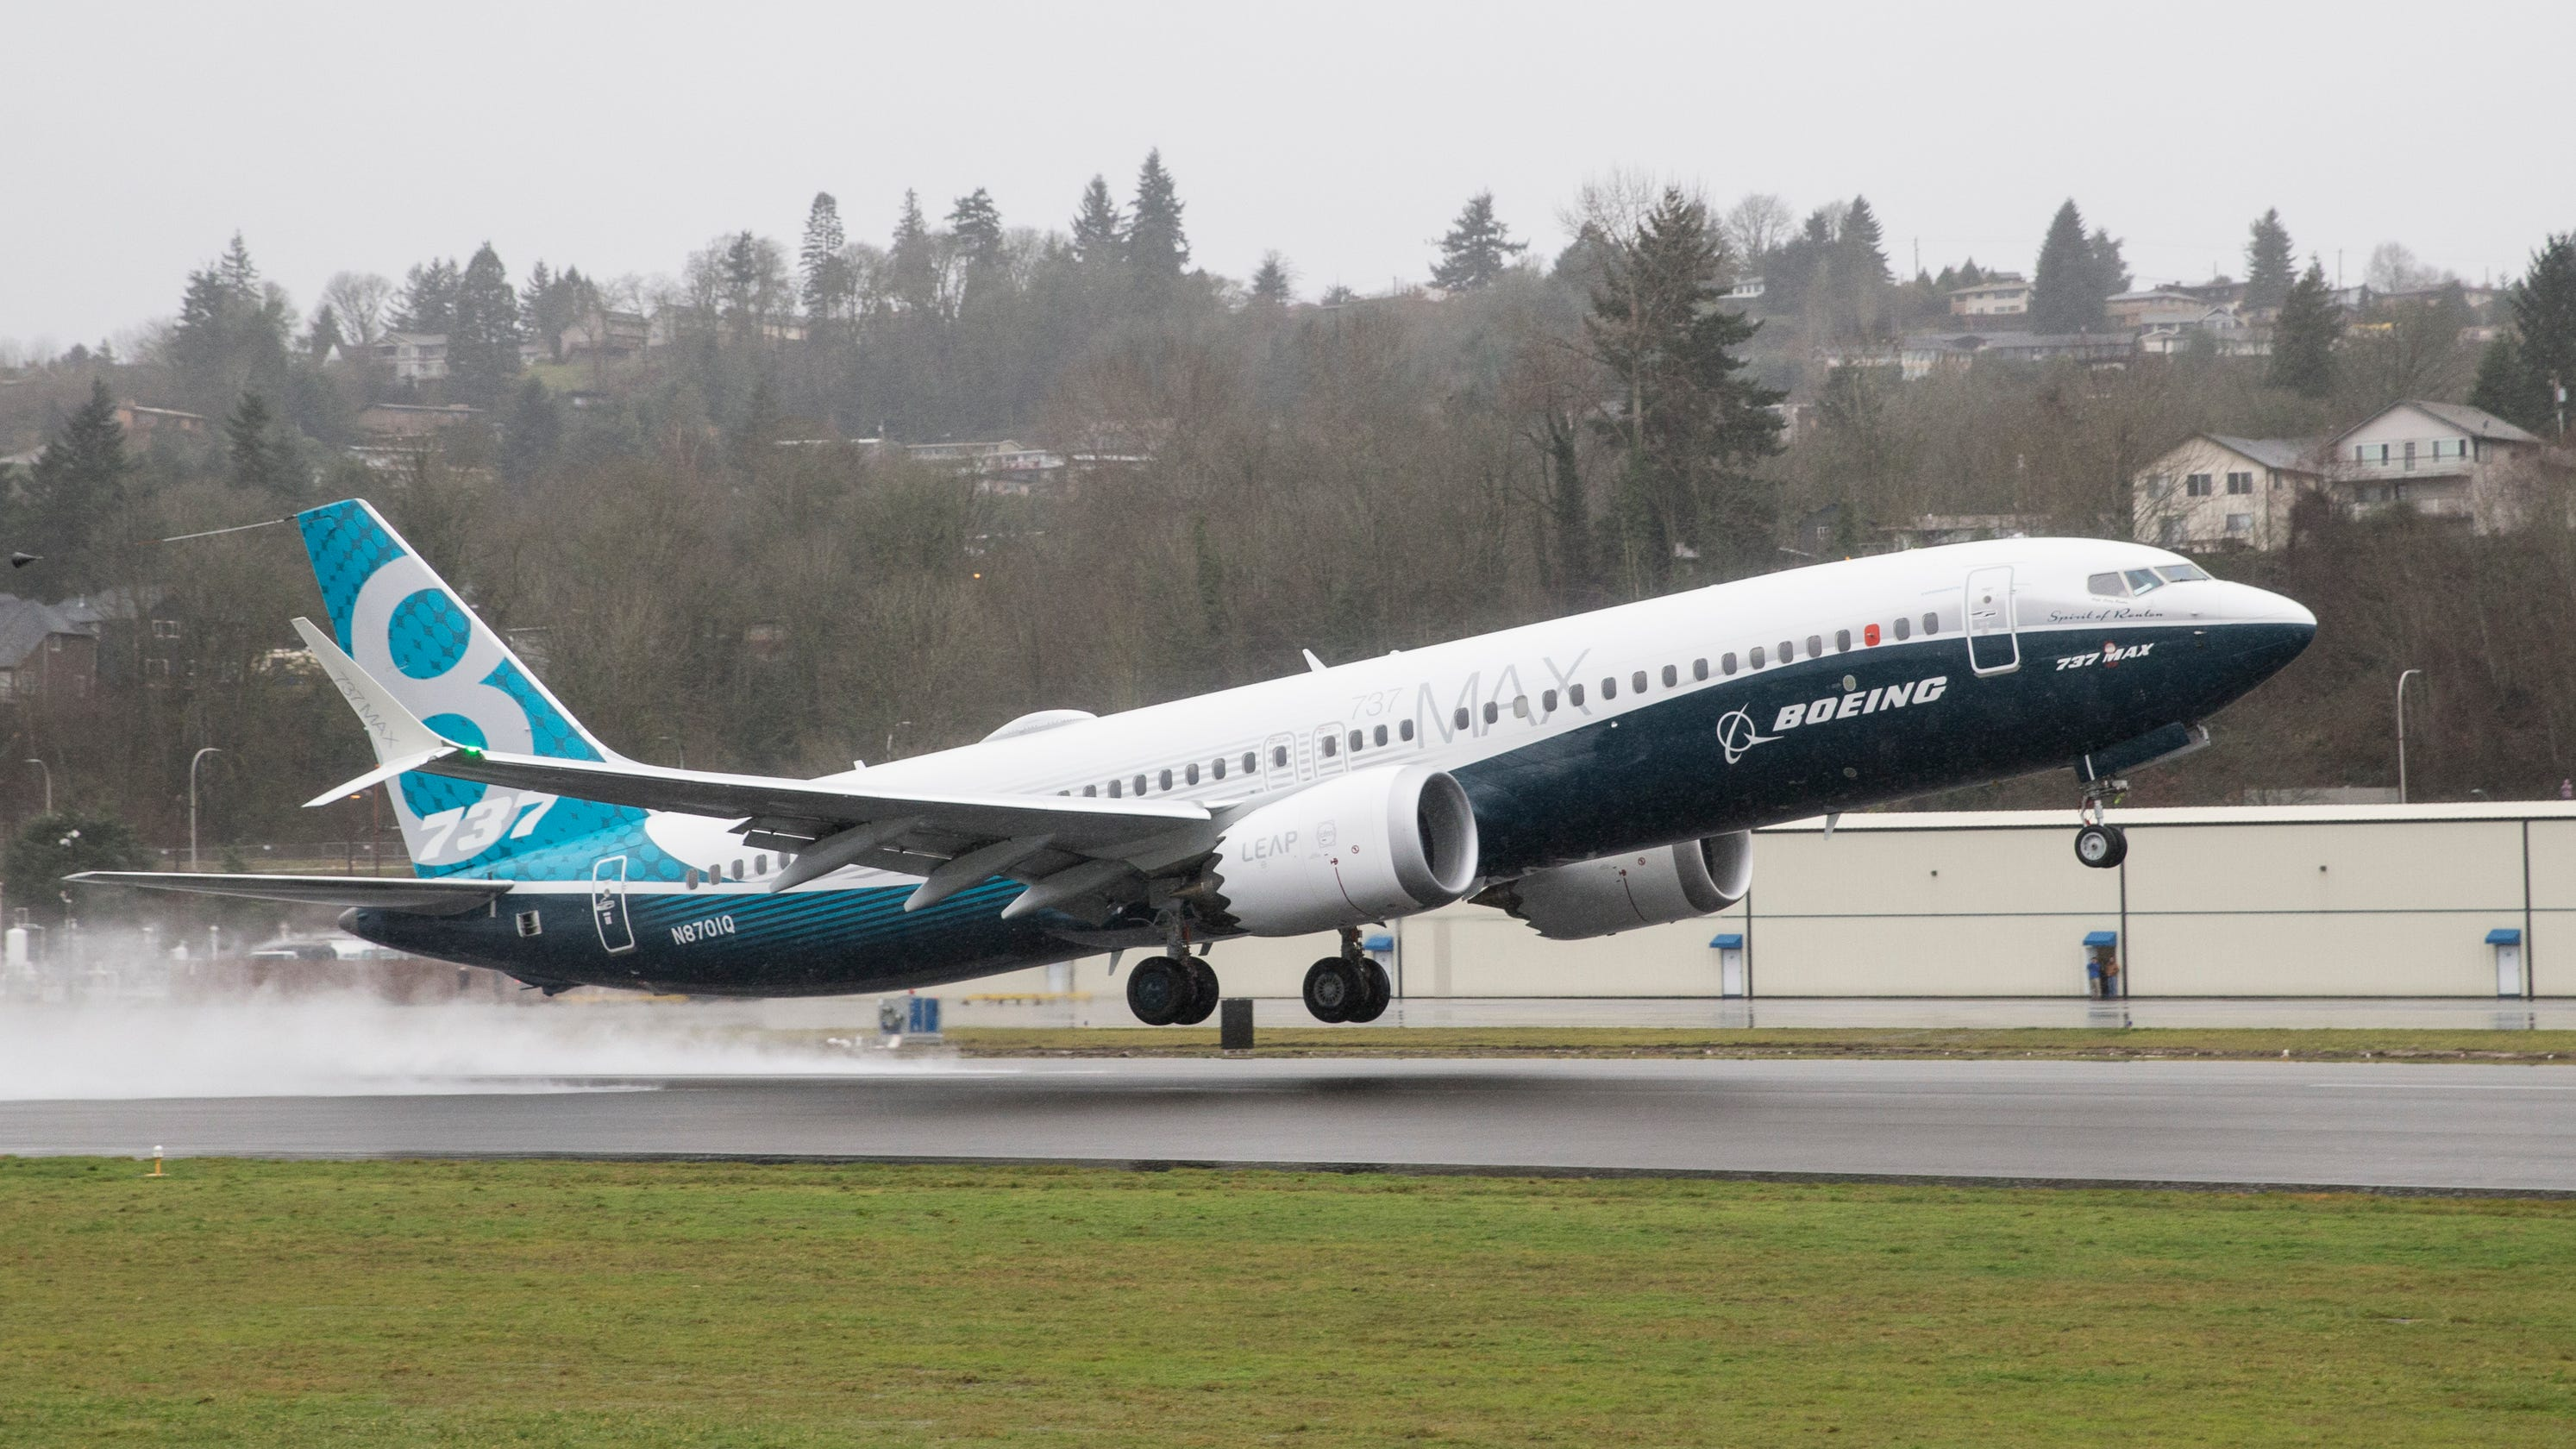 Boeing 737 MAX 8 pilots voiced safety concerns before